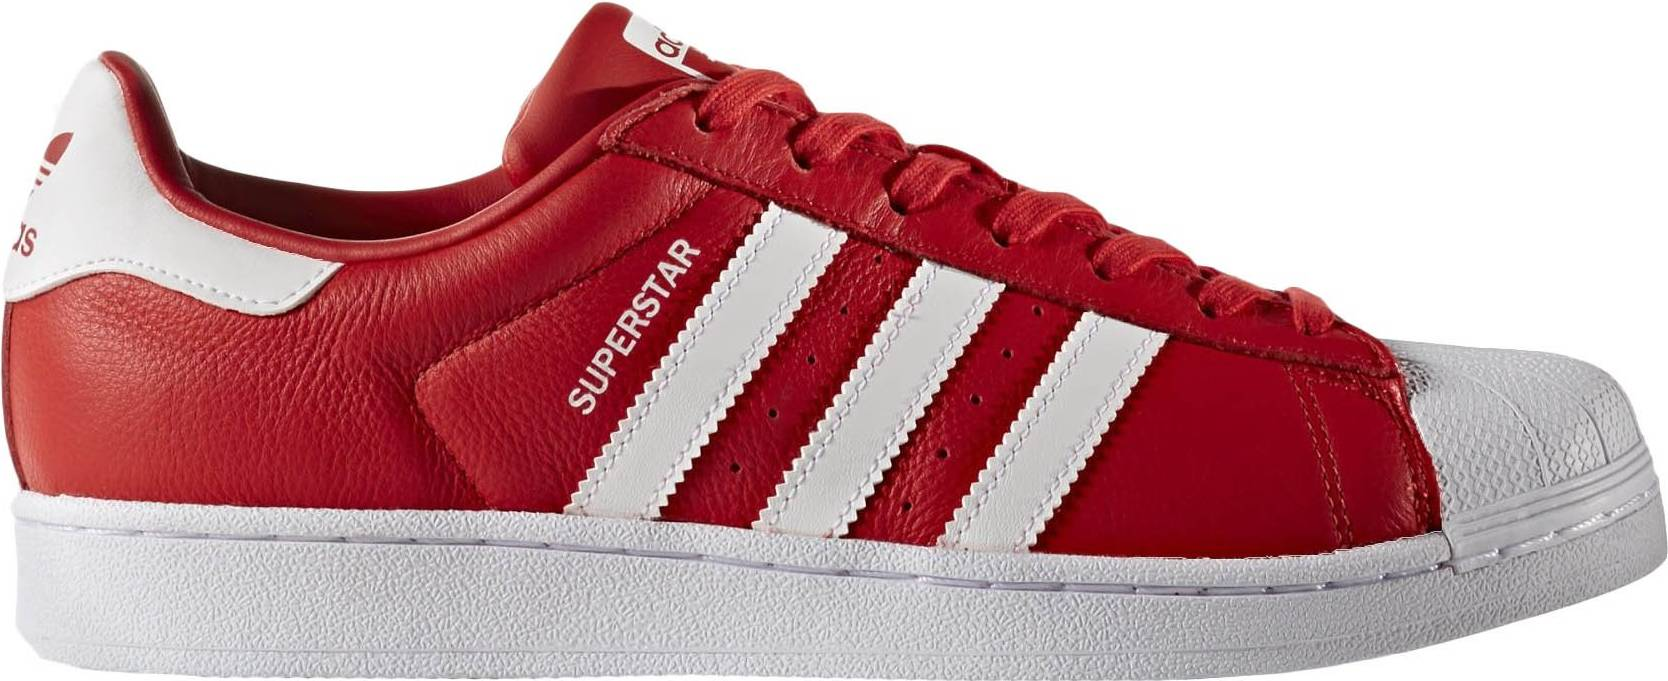 proteína Fuerza absorción  Adidas Superstar Foundation sneakers in 3 colors (only $39) | RunRepeat